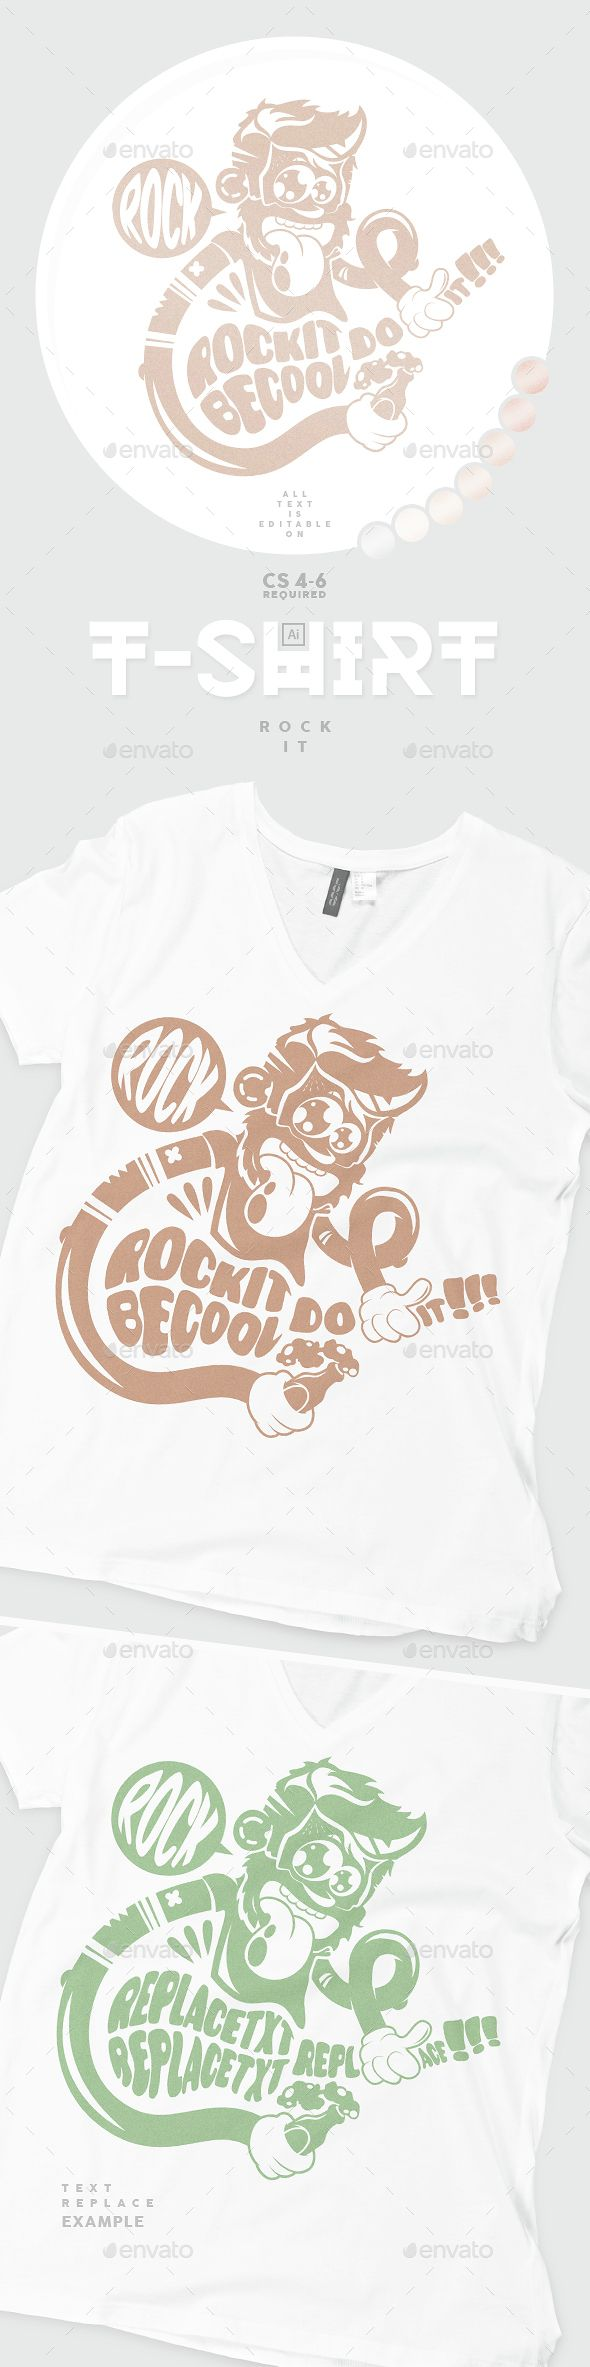 White t shirt eps - Rock It Tshirts Vector Eps Guitar Beer Available Here Https